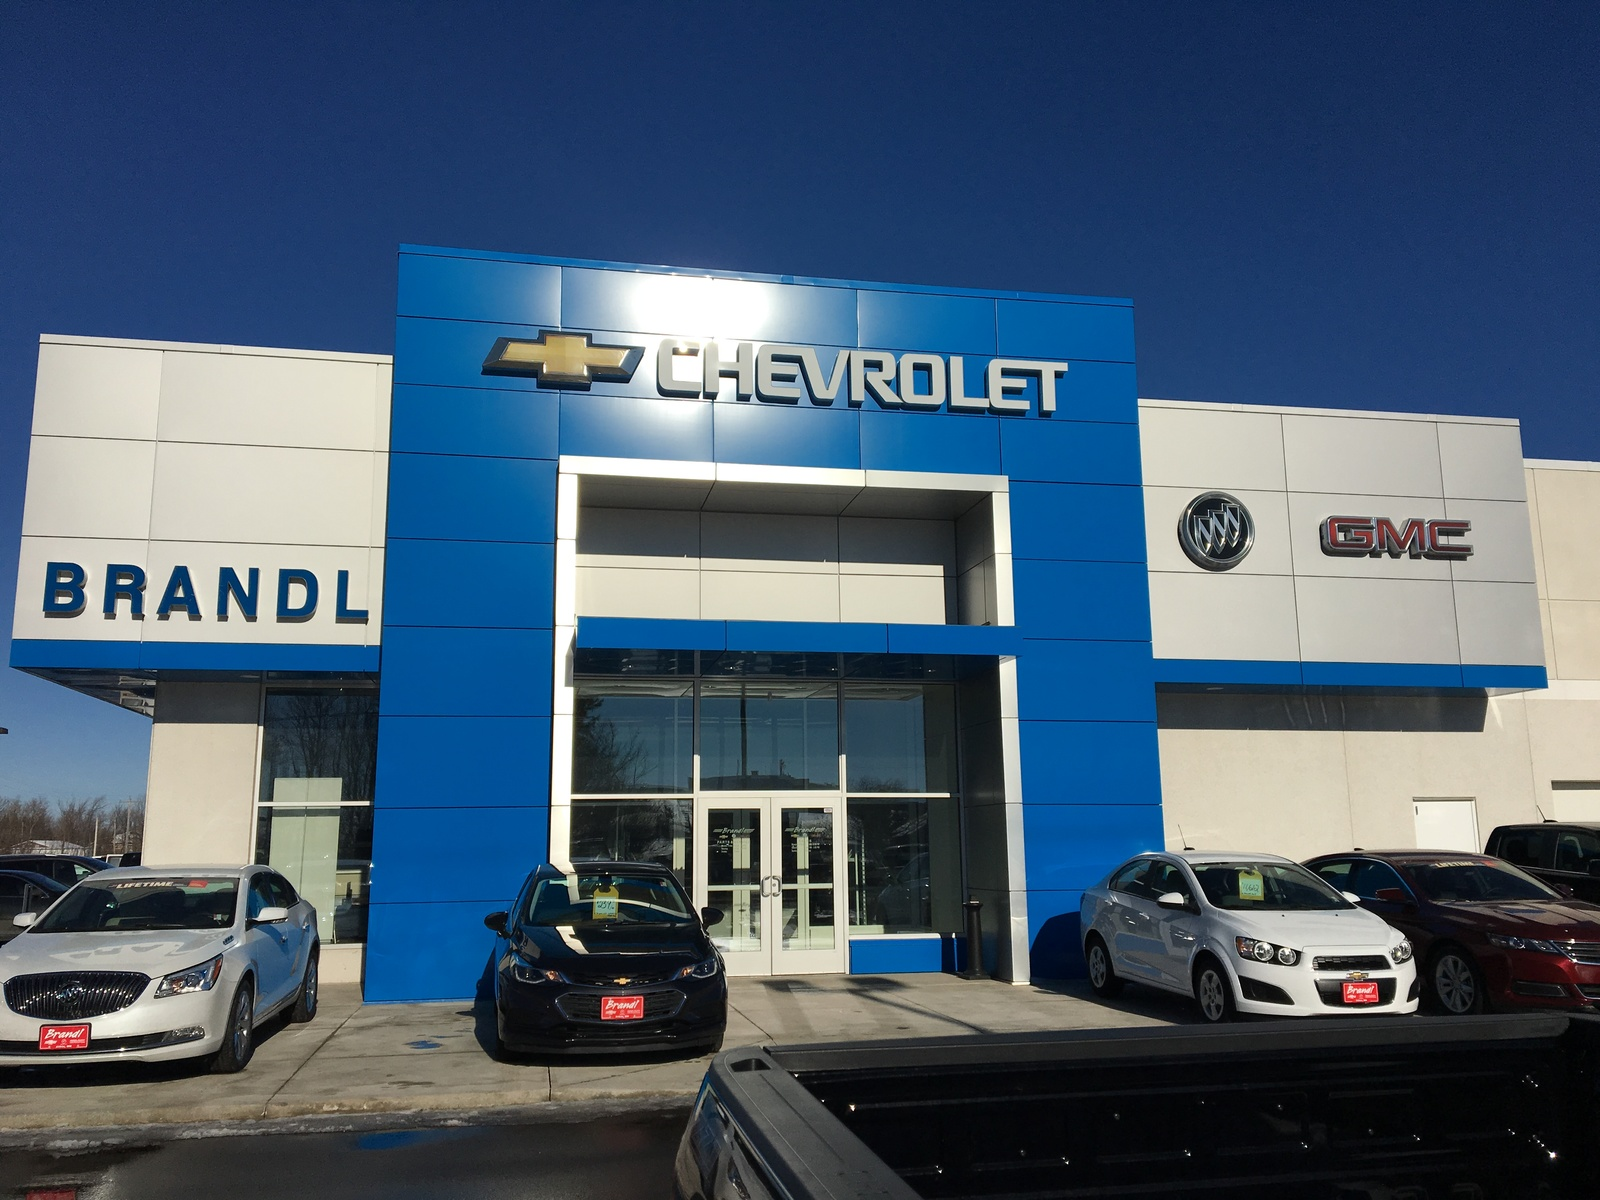 Brandl Chevrolet Buick GMC Aitkin MN Read Consumer reviews